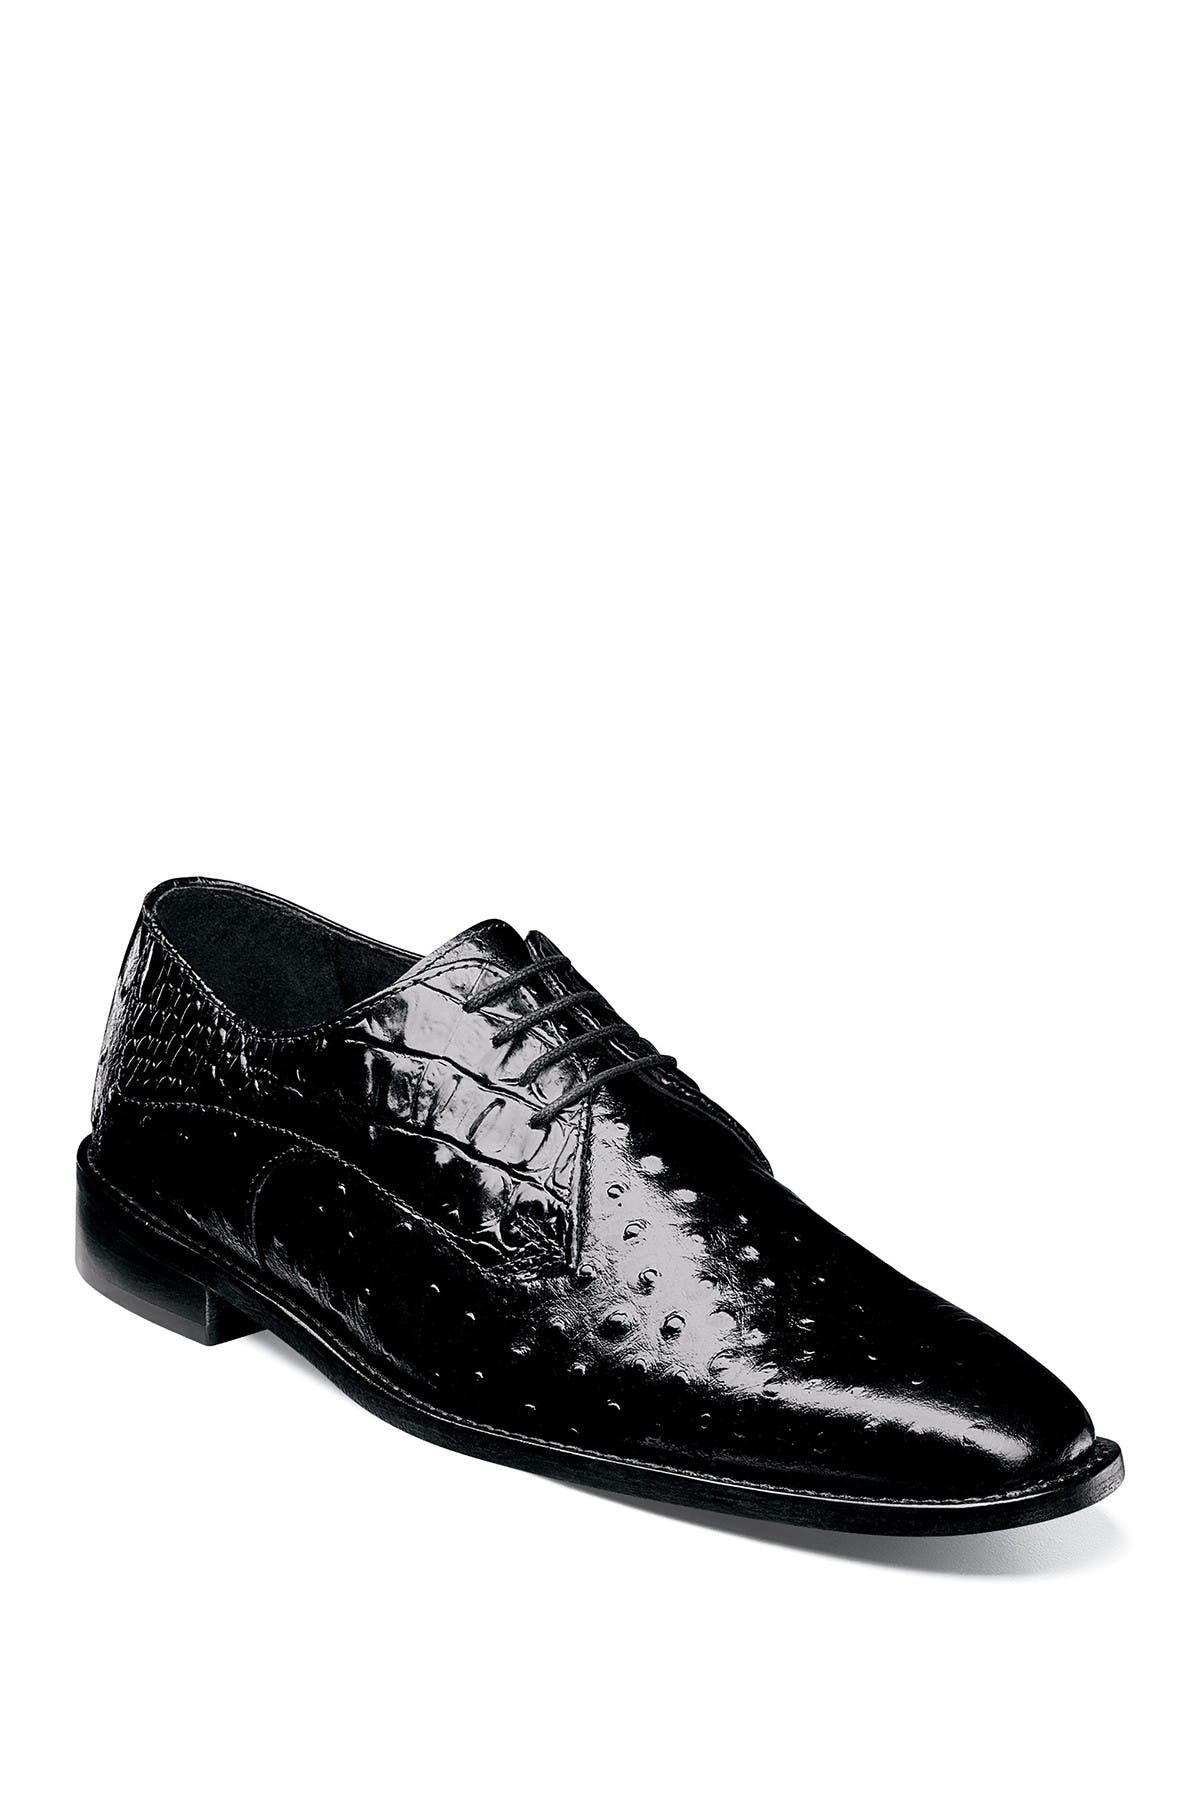 Image of Stacy Adams Russo Textured Oxford